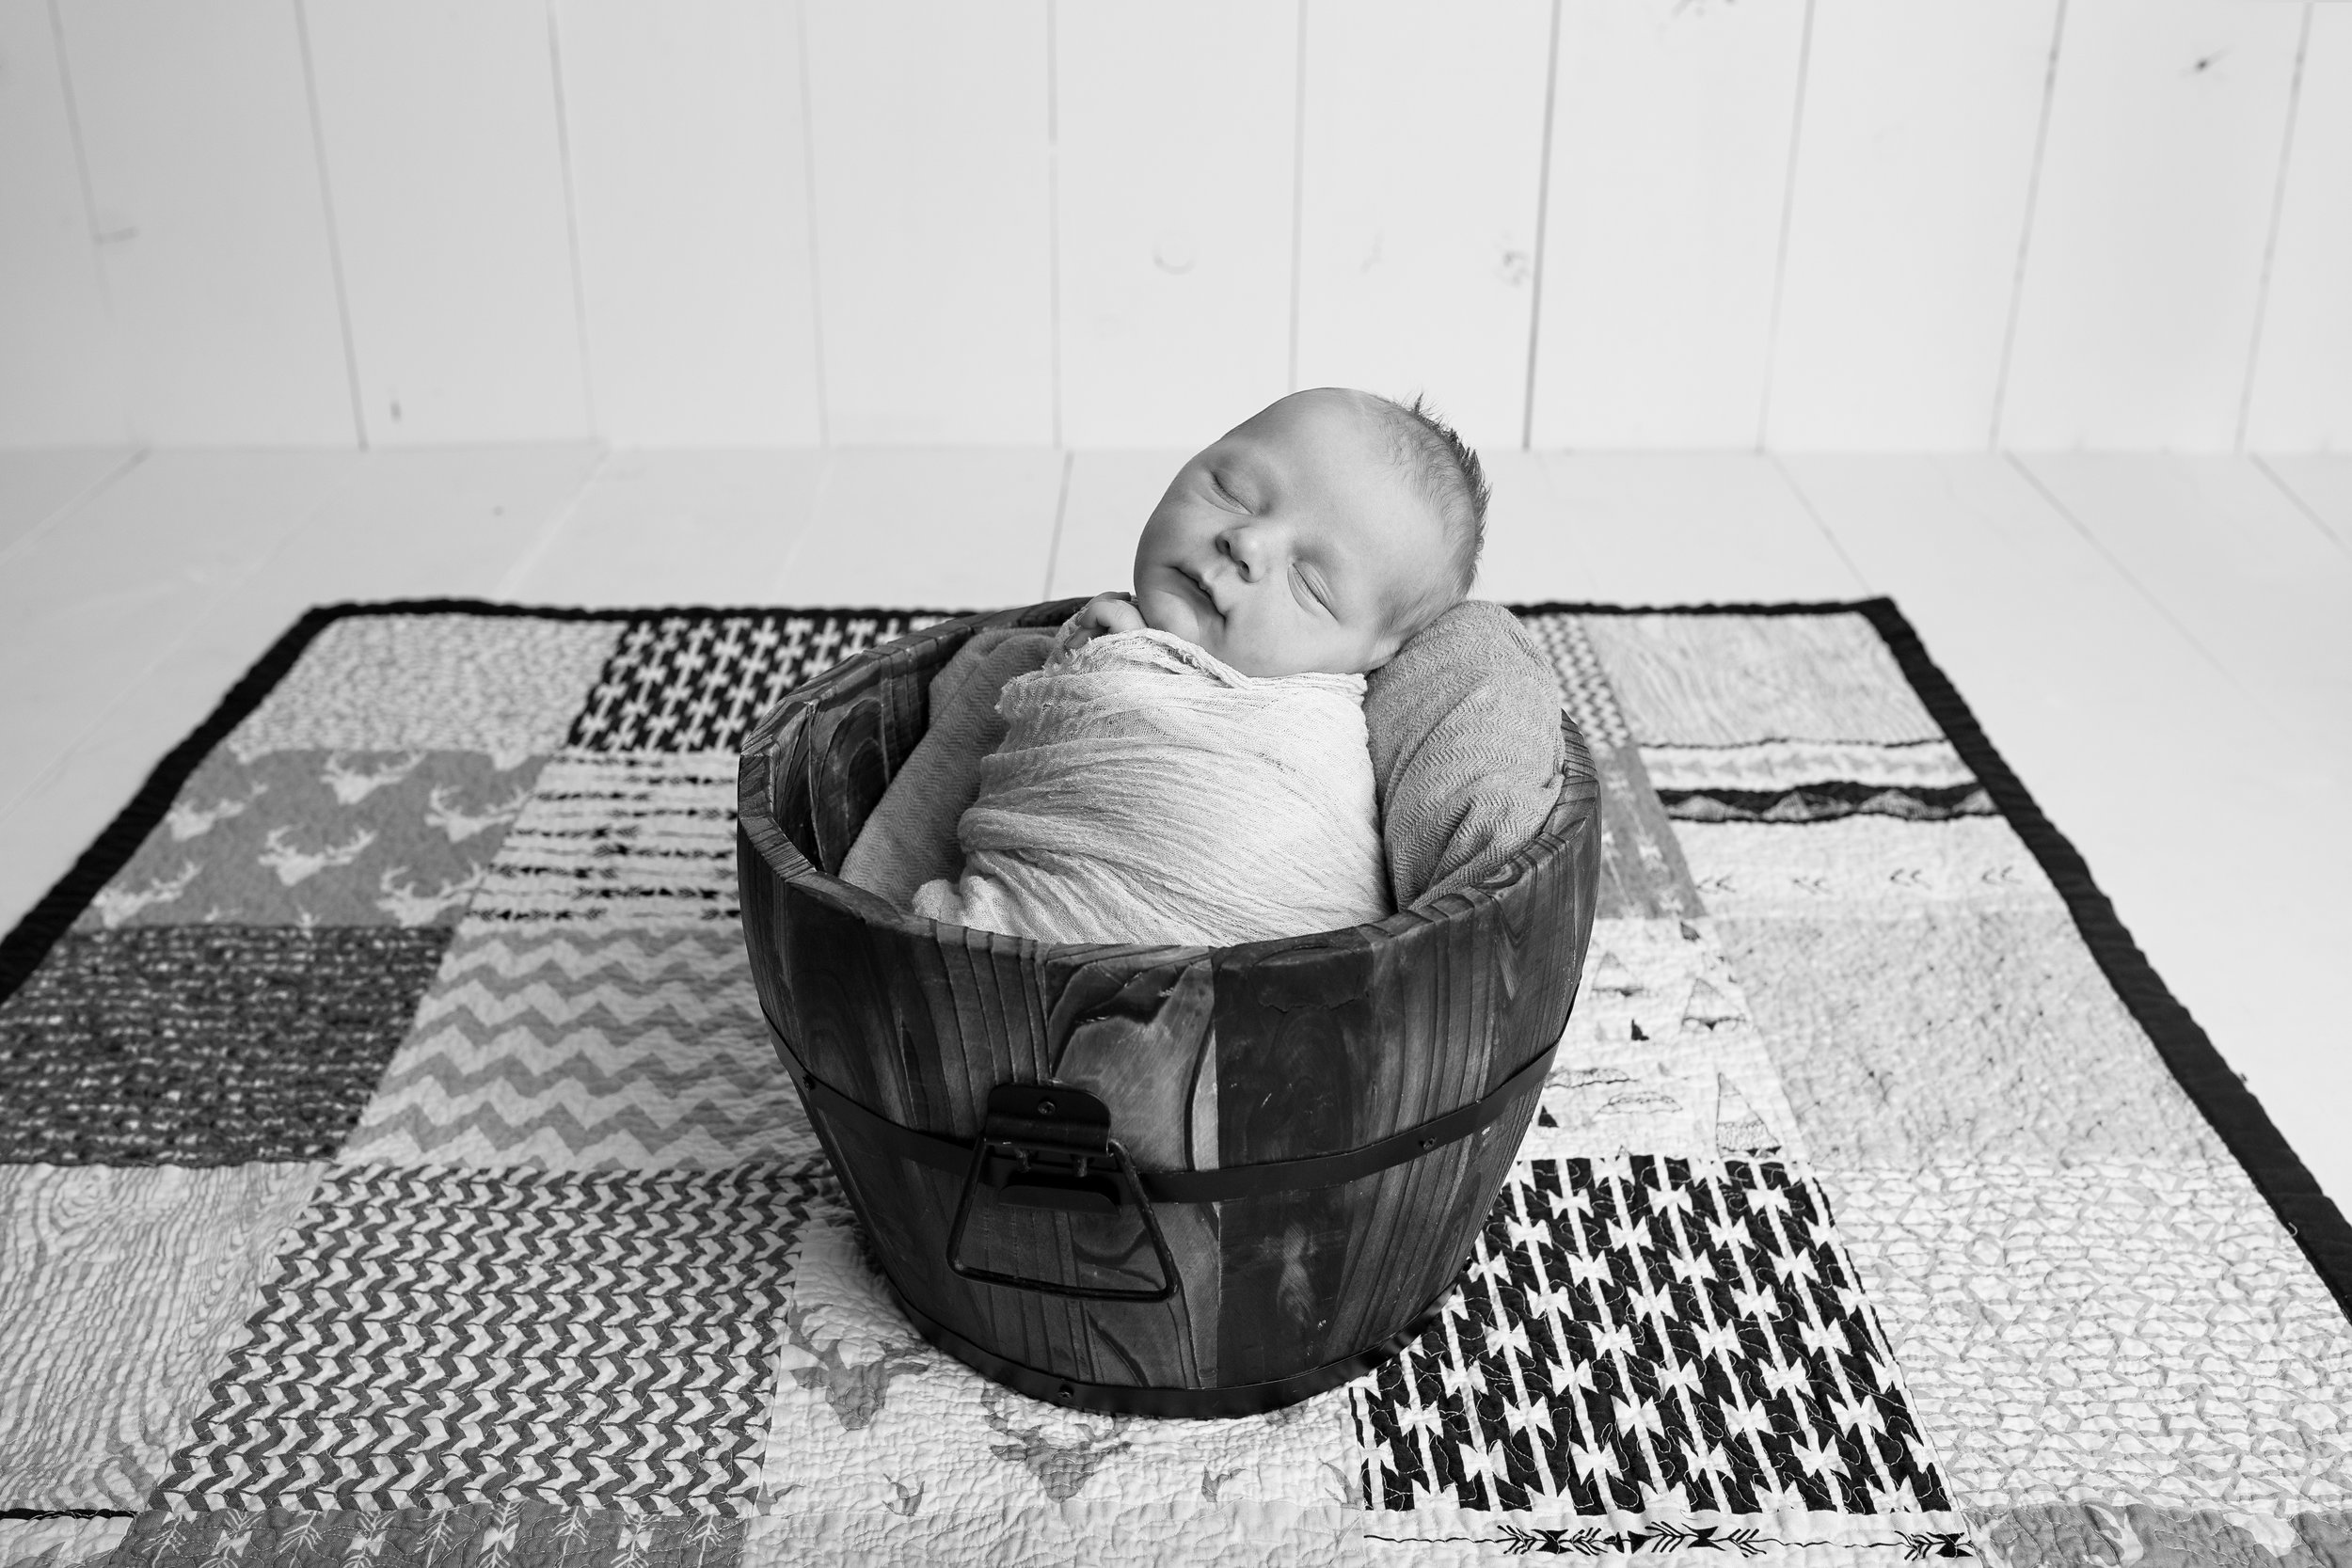 18_11_04 Melody Foster Newborn Session - Pryson52.jpg